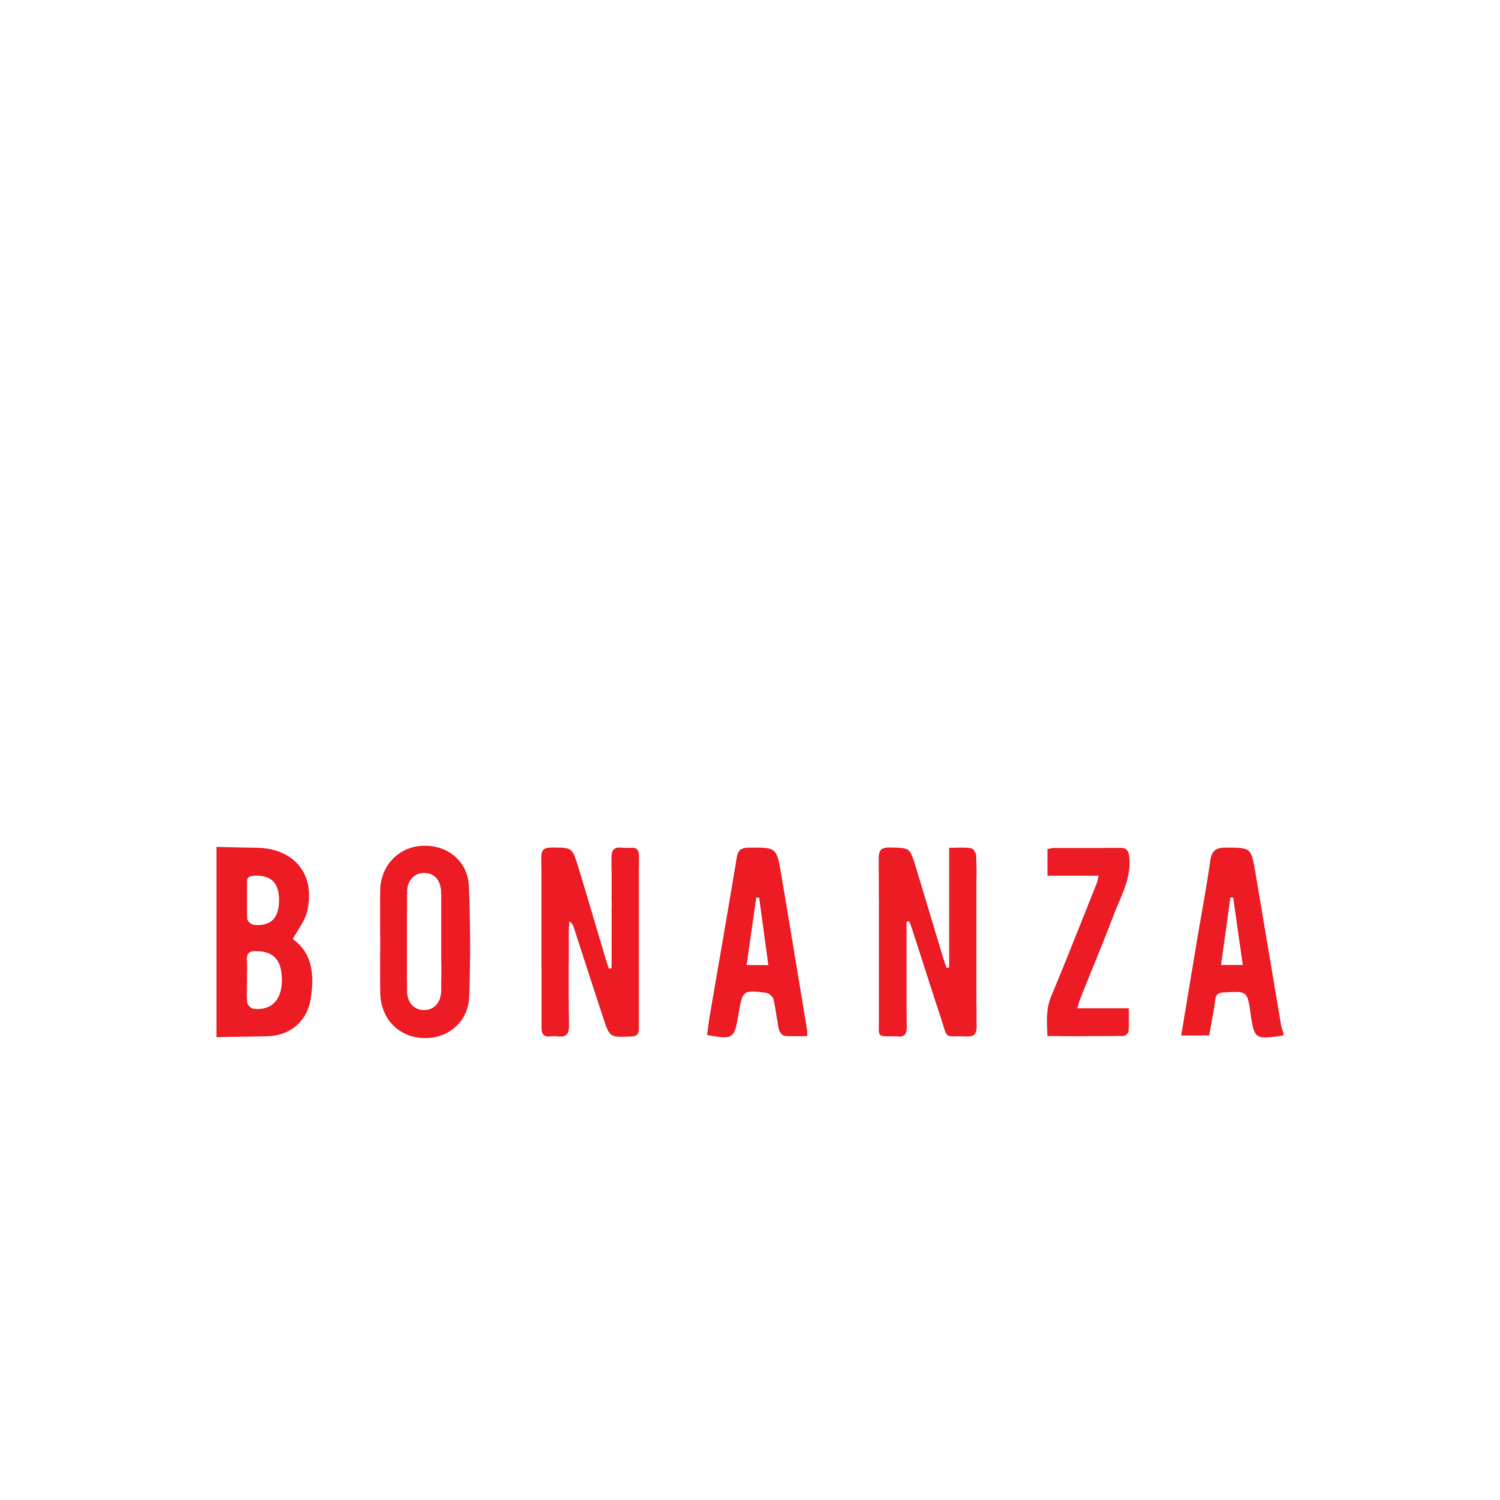 Bonanza Steak & BBQ